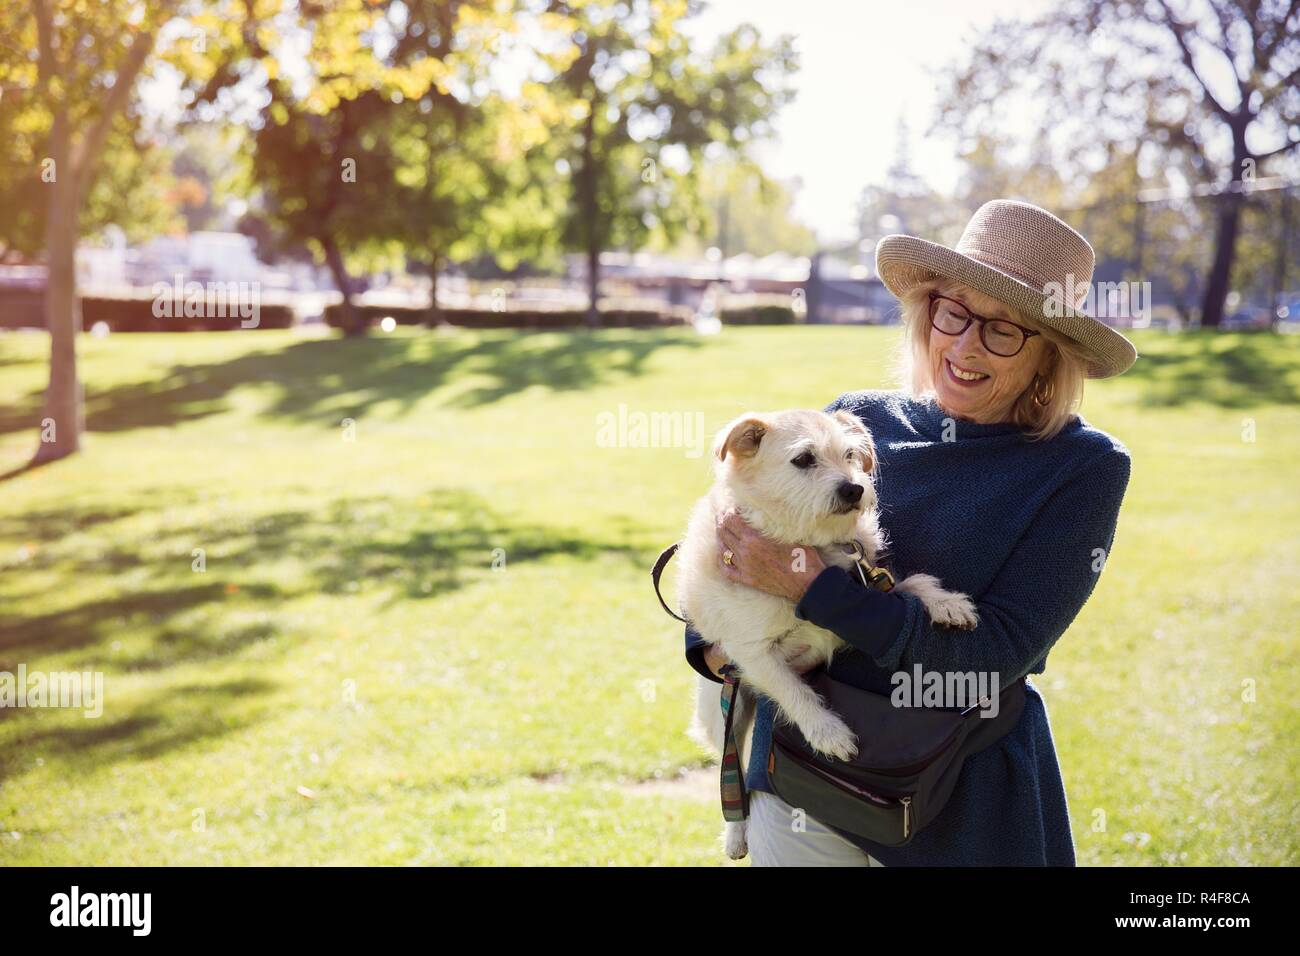 Old Woman Holding a Dog - Stock Image